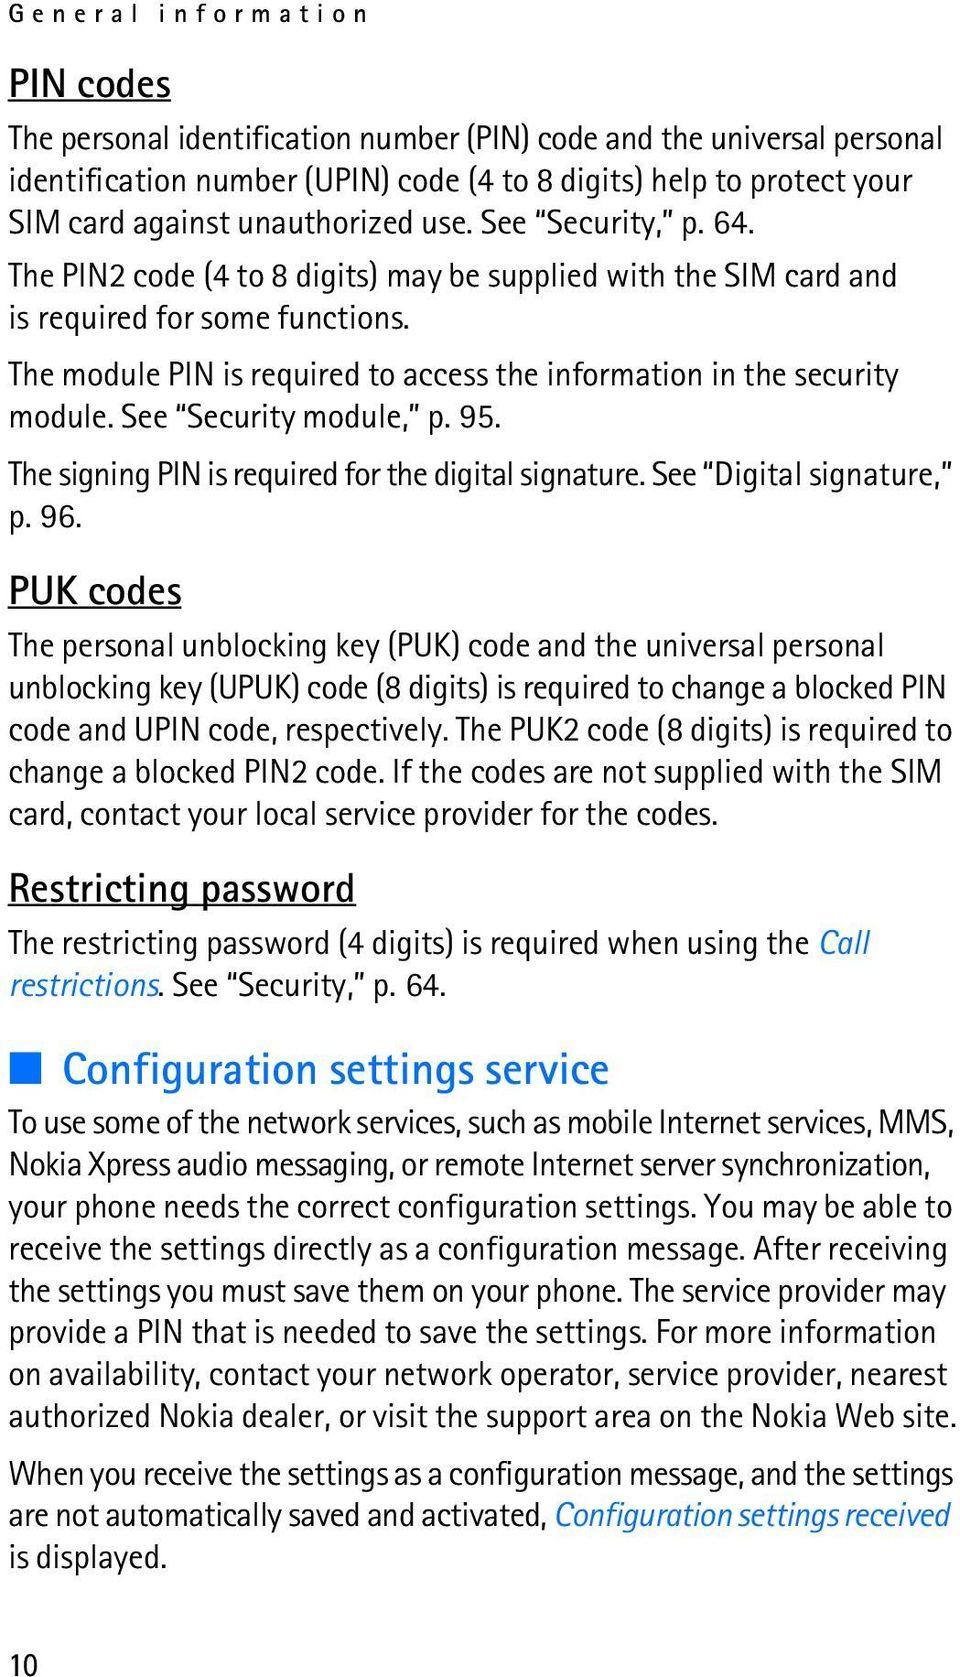 The module PIN is required to access the information in the security module. See Security module, p. 95. The signing PIN is required for the digital signature. See Digital signature, p. 96.